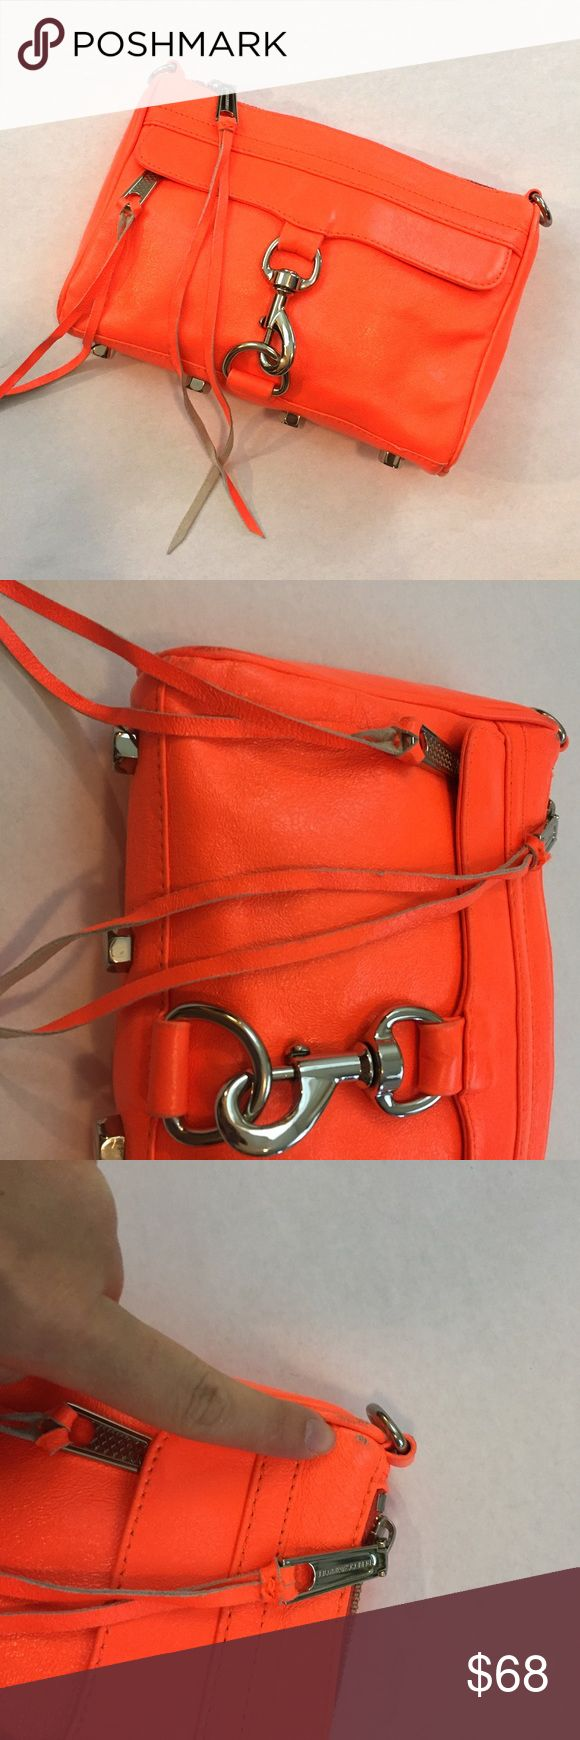 REBECCA MINKOFF Mini Mac Neon Orange Clutch Bag Great clutch by Rebecca Minkoff. Mini Mac style. *missing long strap*. Please note, there is wear on each corner and on the back of the bag. View all images carefully. Rebecca Minkoff Bags Clutches & Wristlets